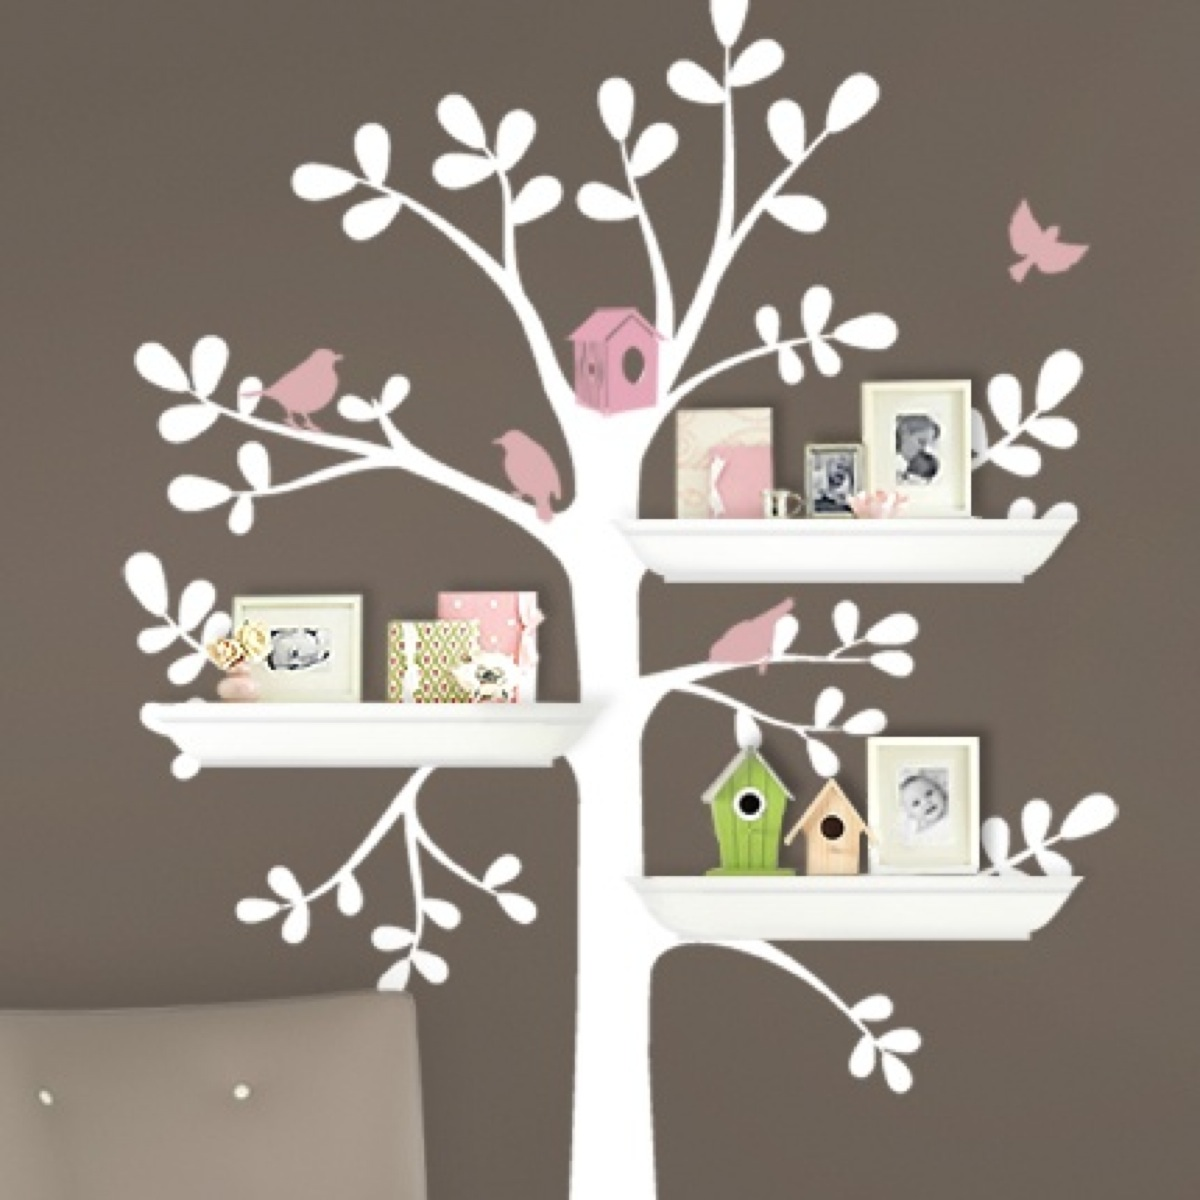 wall decal for kids' room